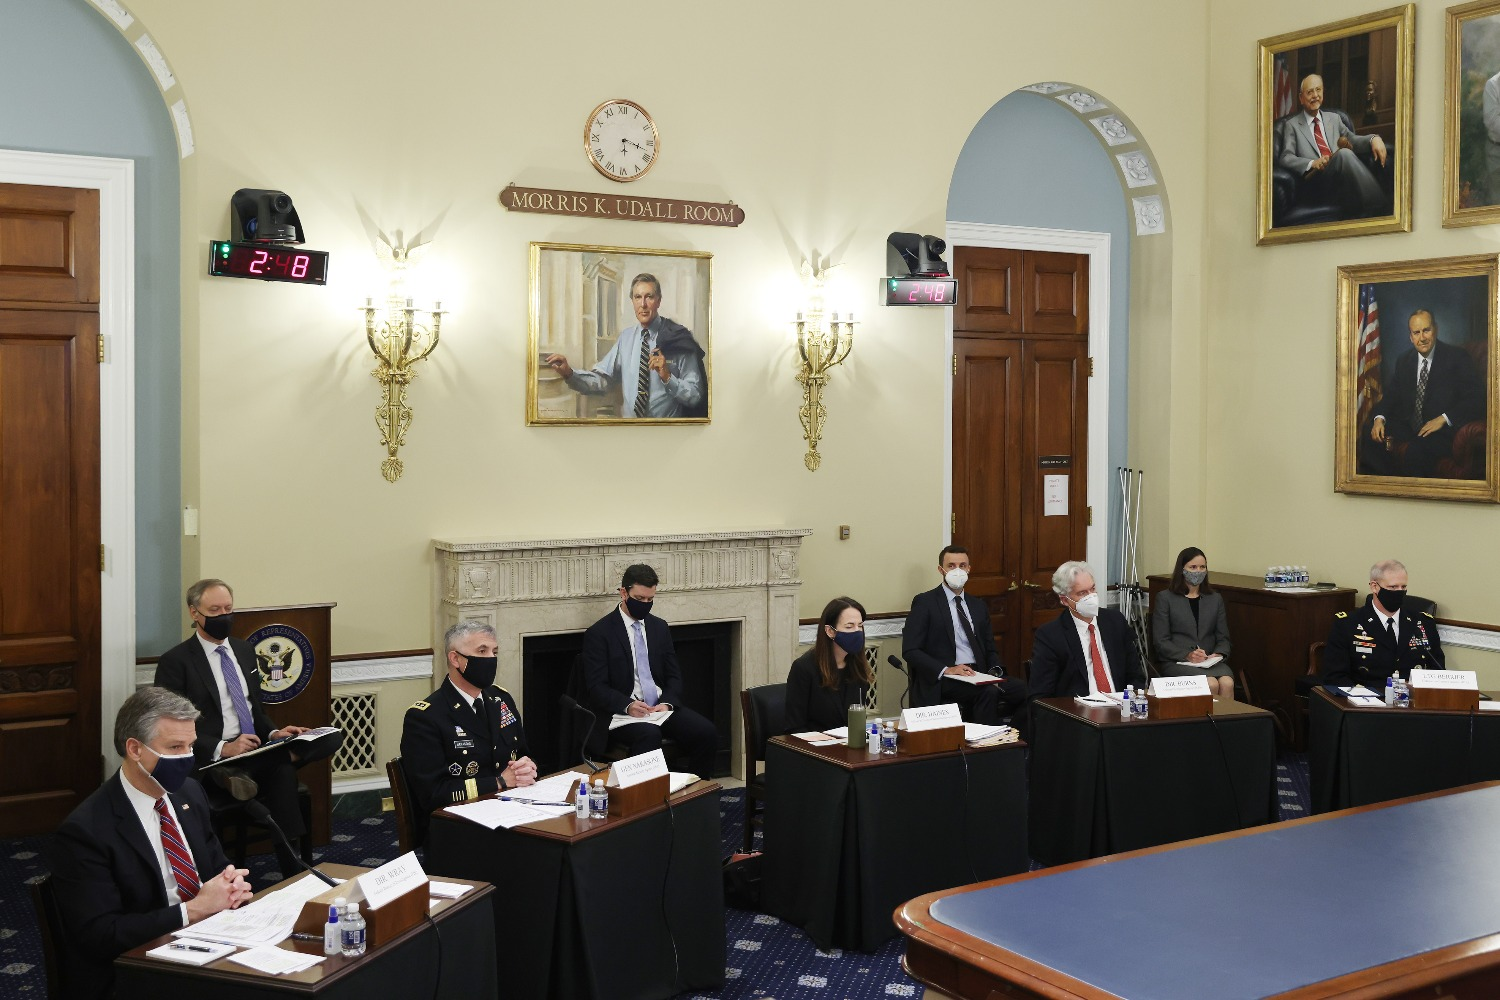 Leaders of the U.S. intelligence community testify before the House Permanent Select Committee on Intelligence.